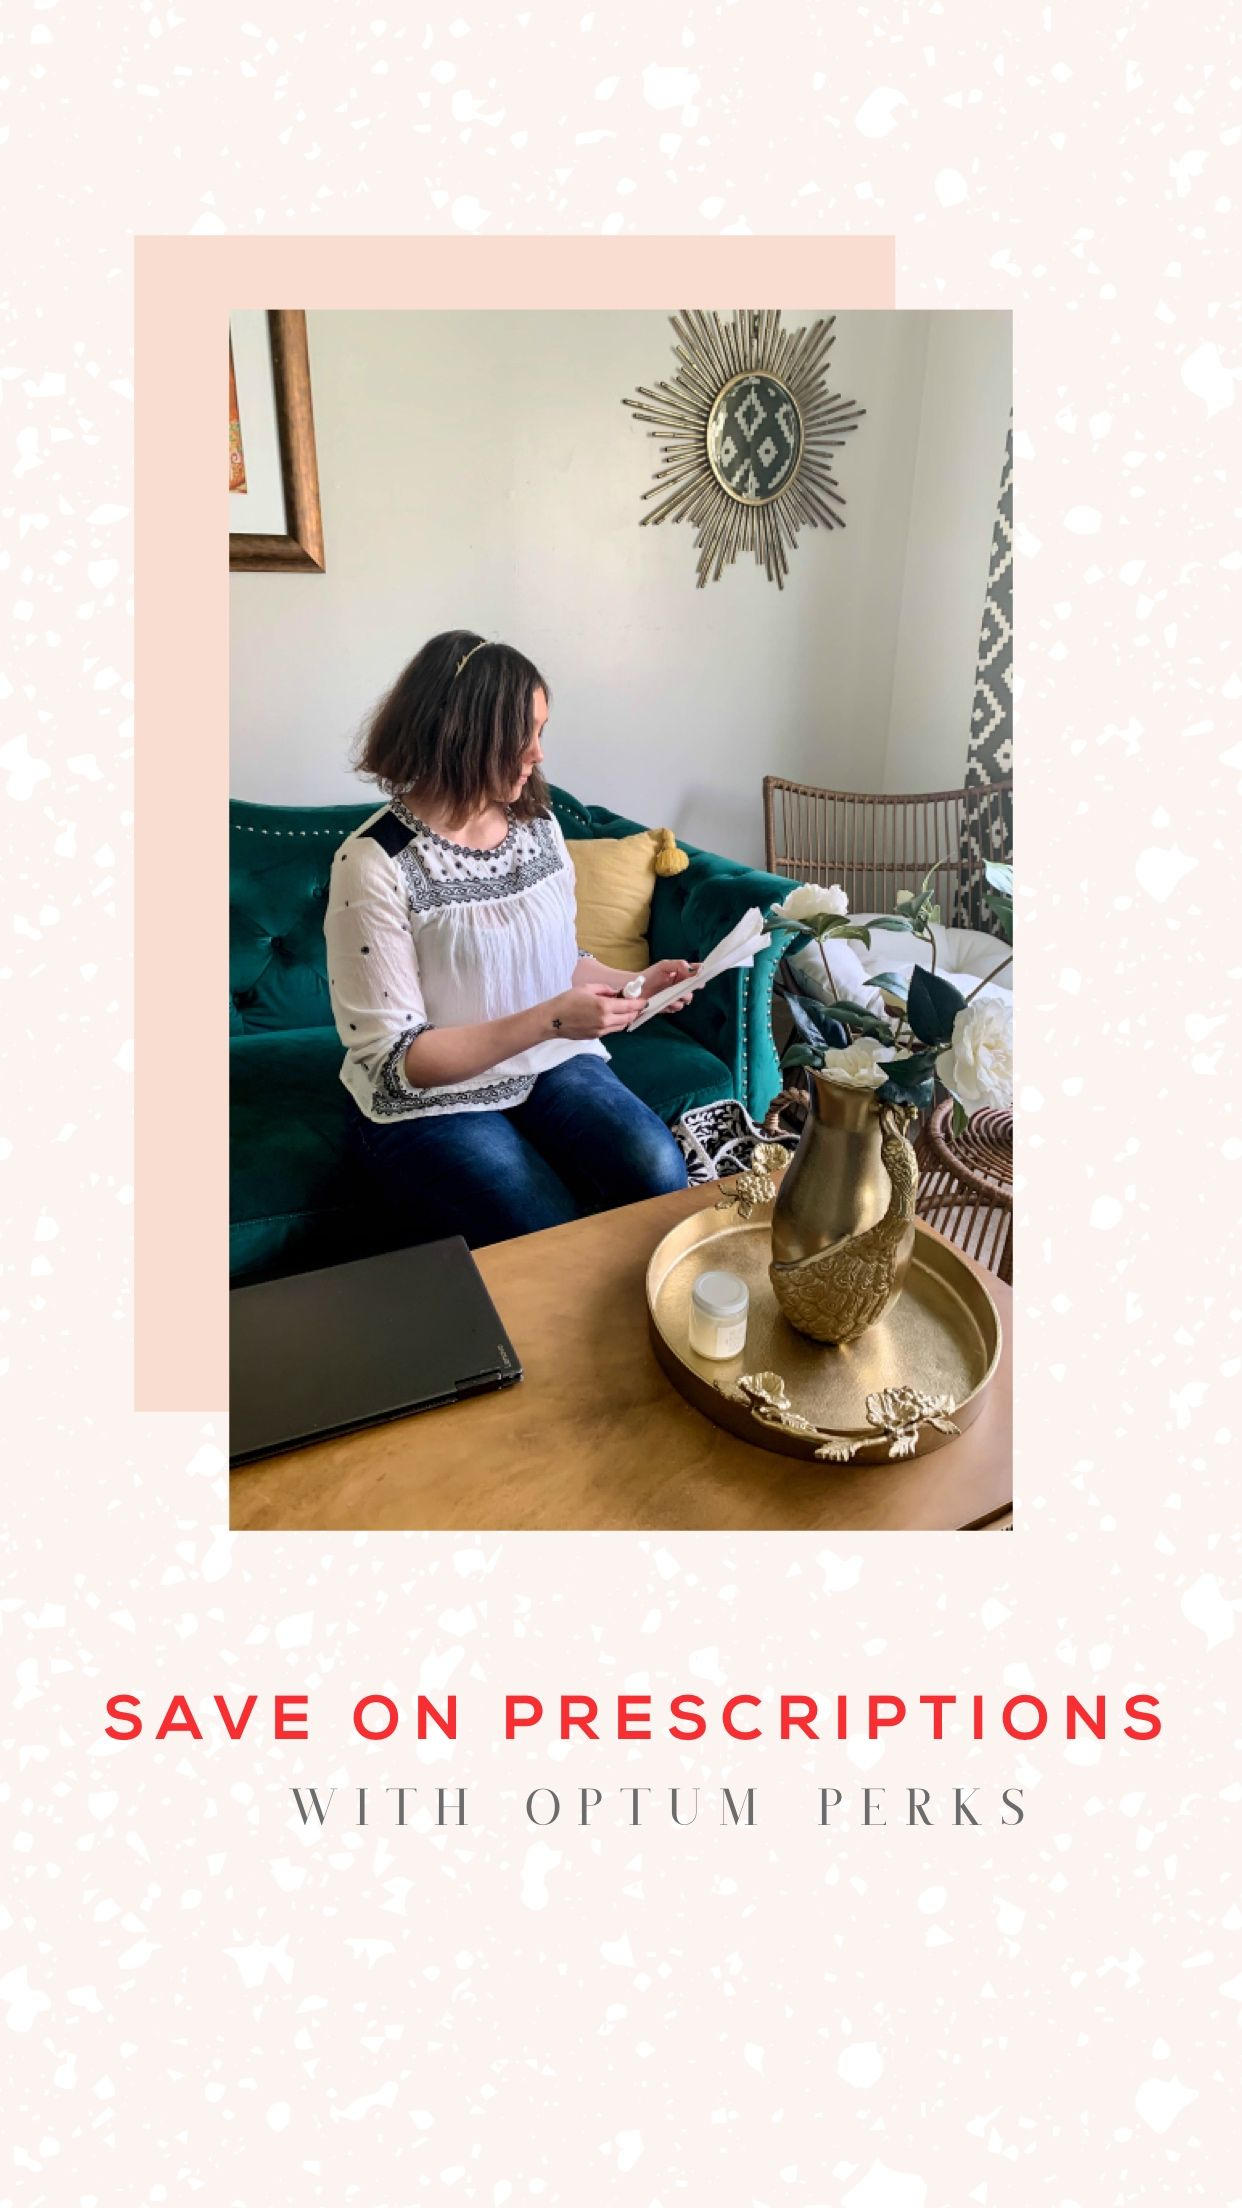 Search Find And Save With Optum Perks Prescription Coupons In 2020 Prescription Savings Prescription Medical Prescription